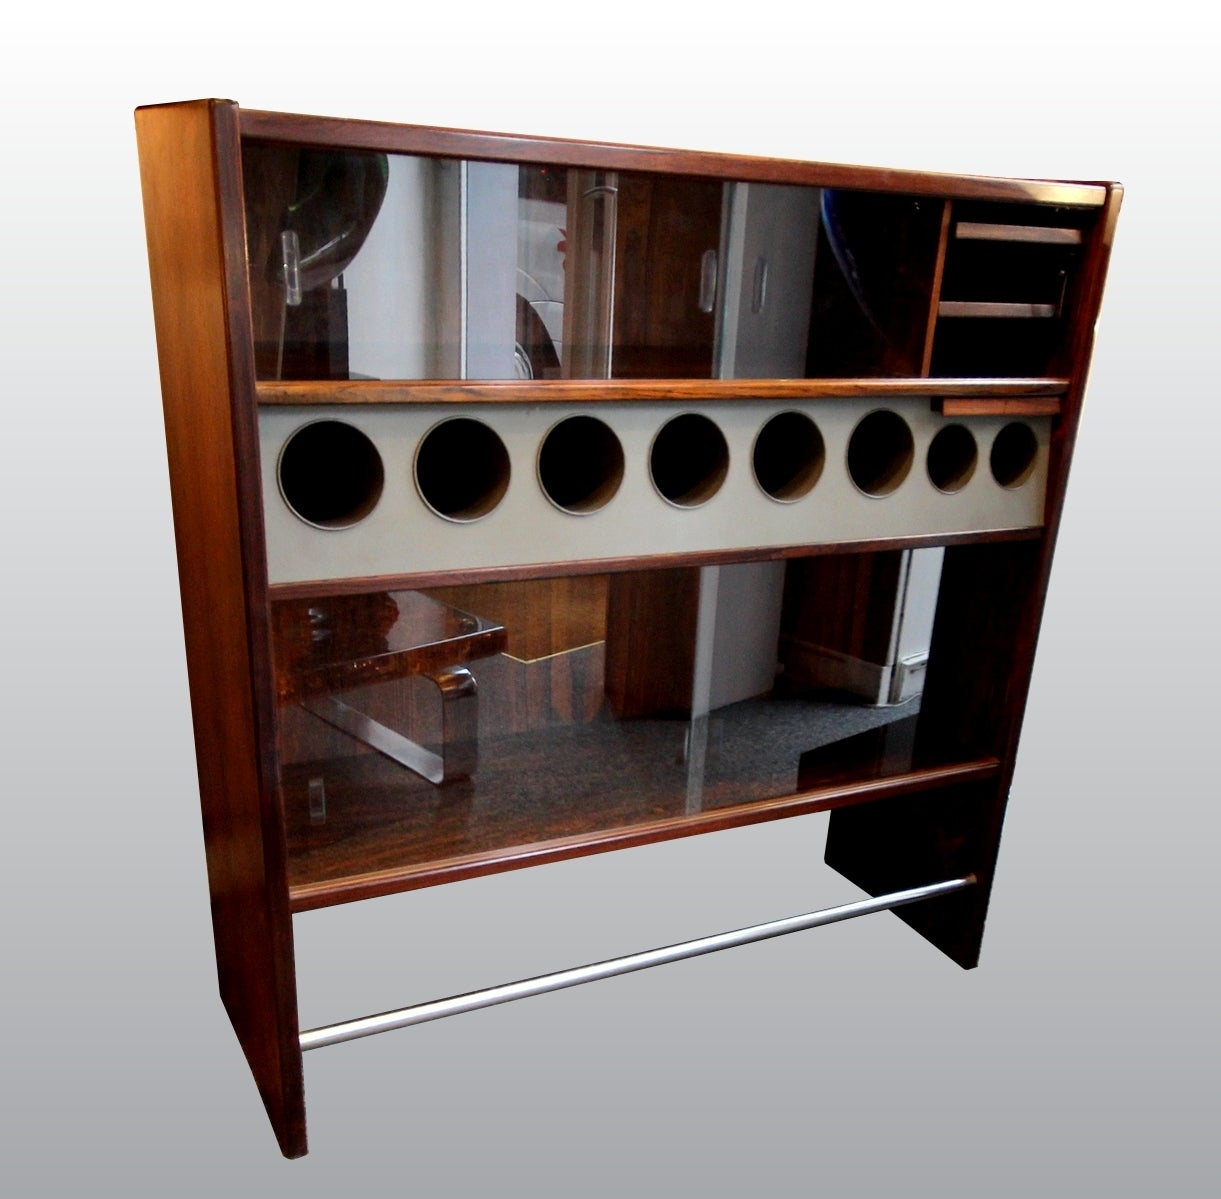 Original 1960s Dry Bar by Erik Buch In Good Condition For Sale In Paris, FR